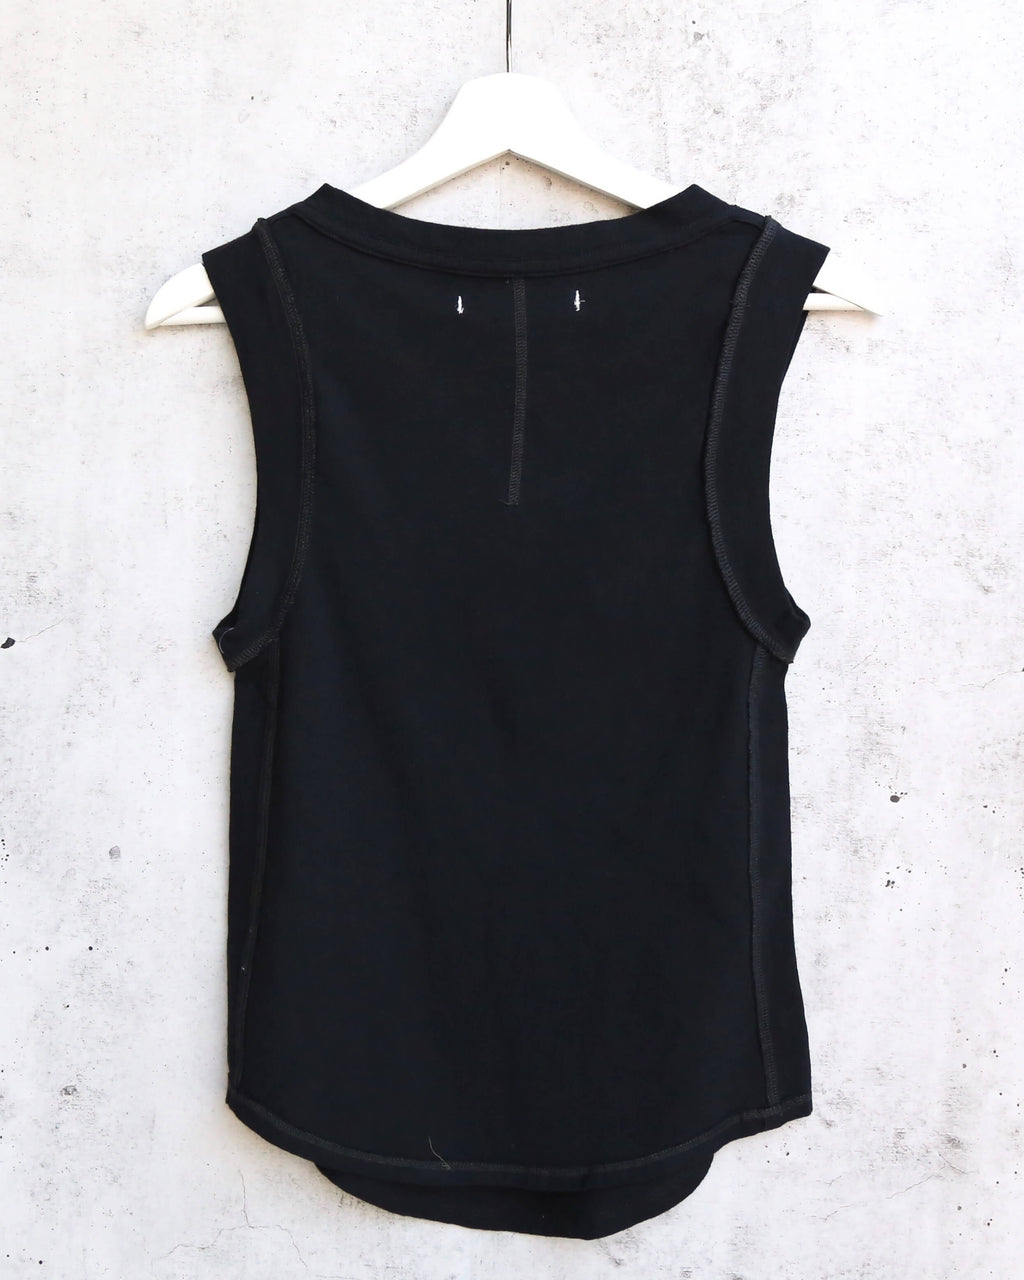 Free People - We The Free Go To Tank - Black